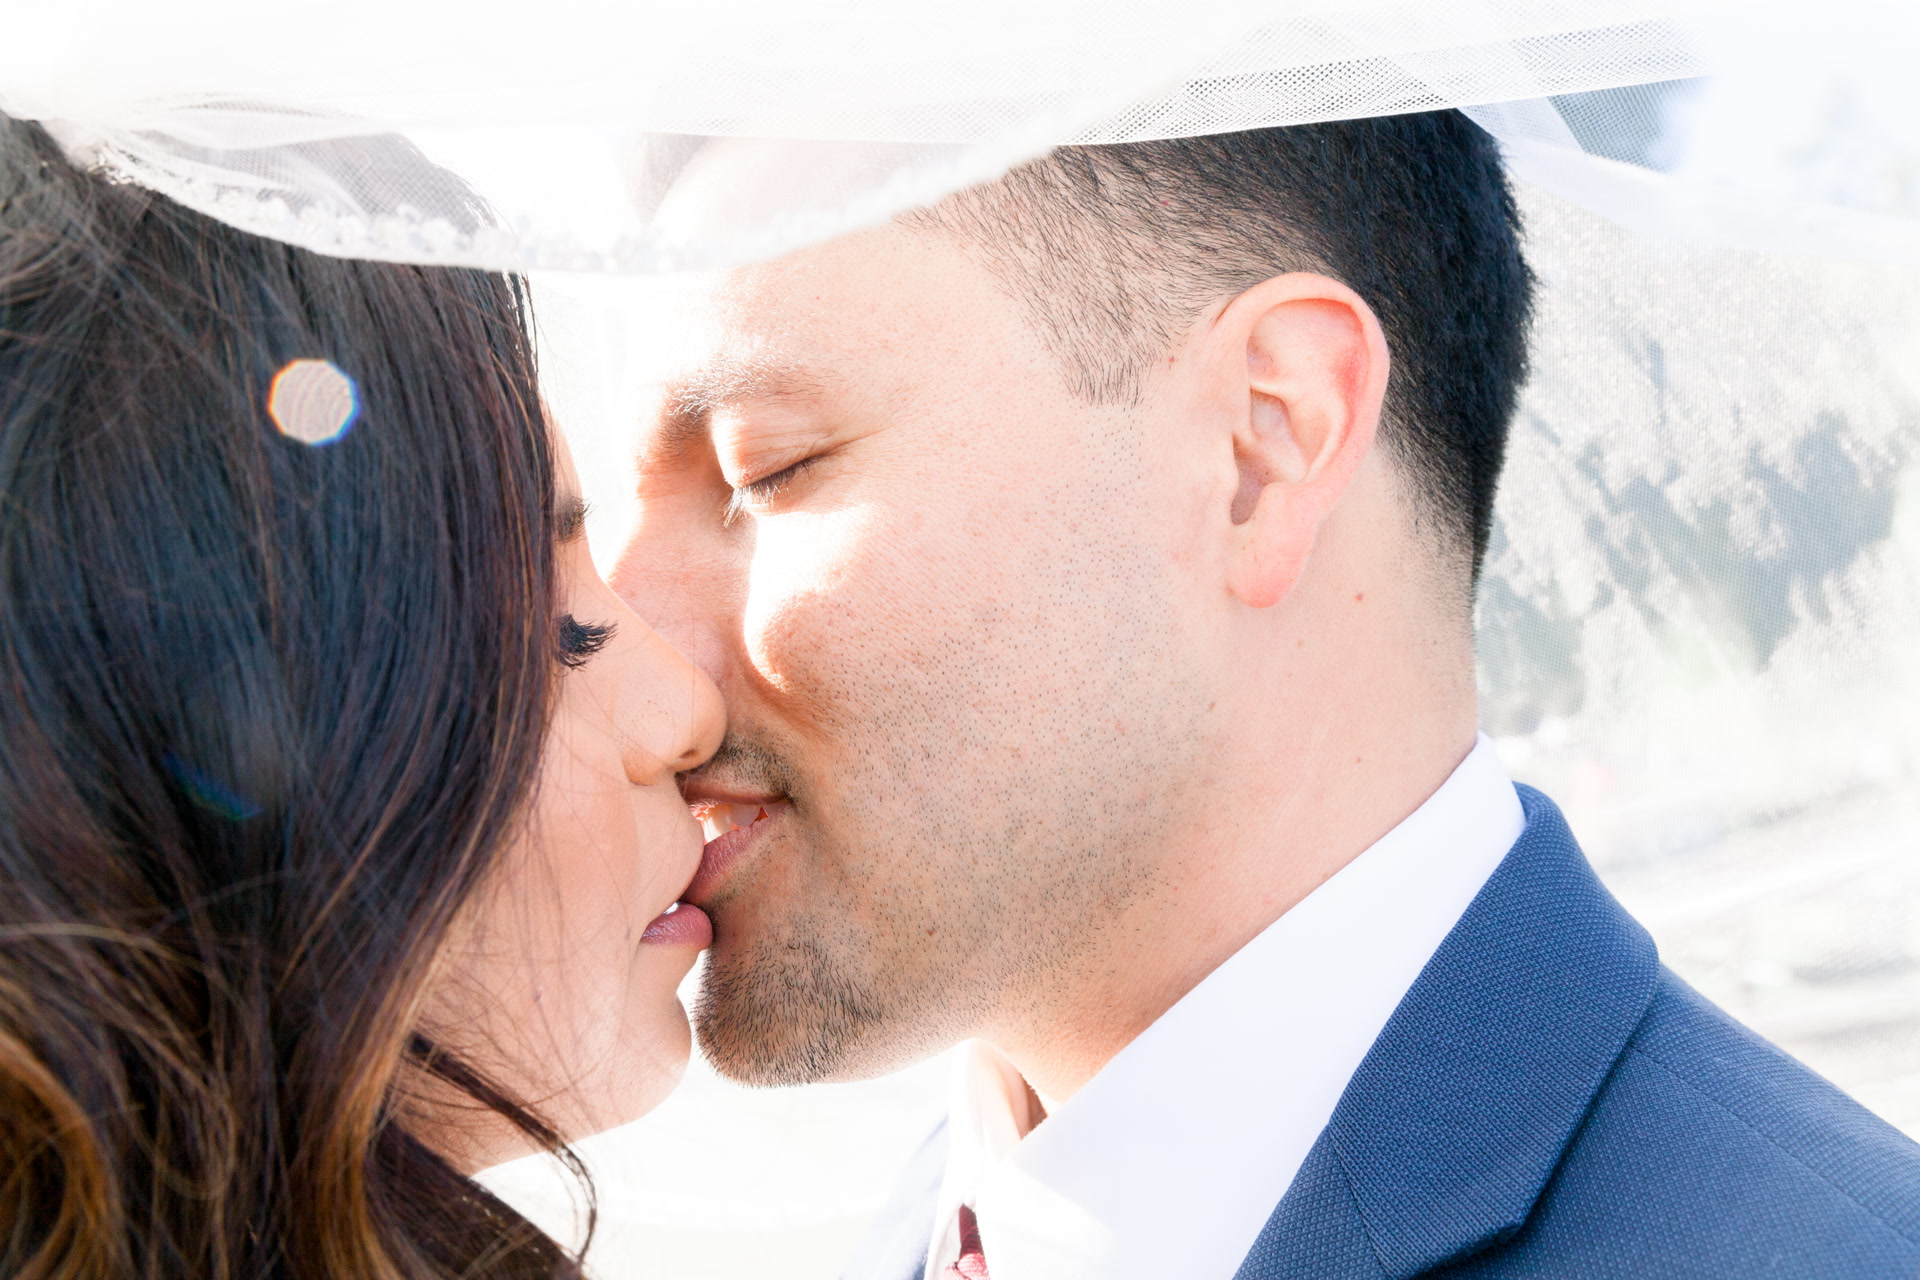 Elizabeth  + Cesar  | San Pablo, California | Nagoya Way Berth